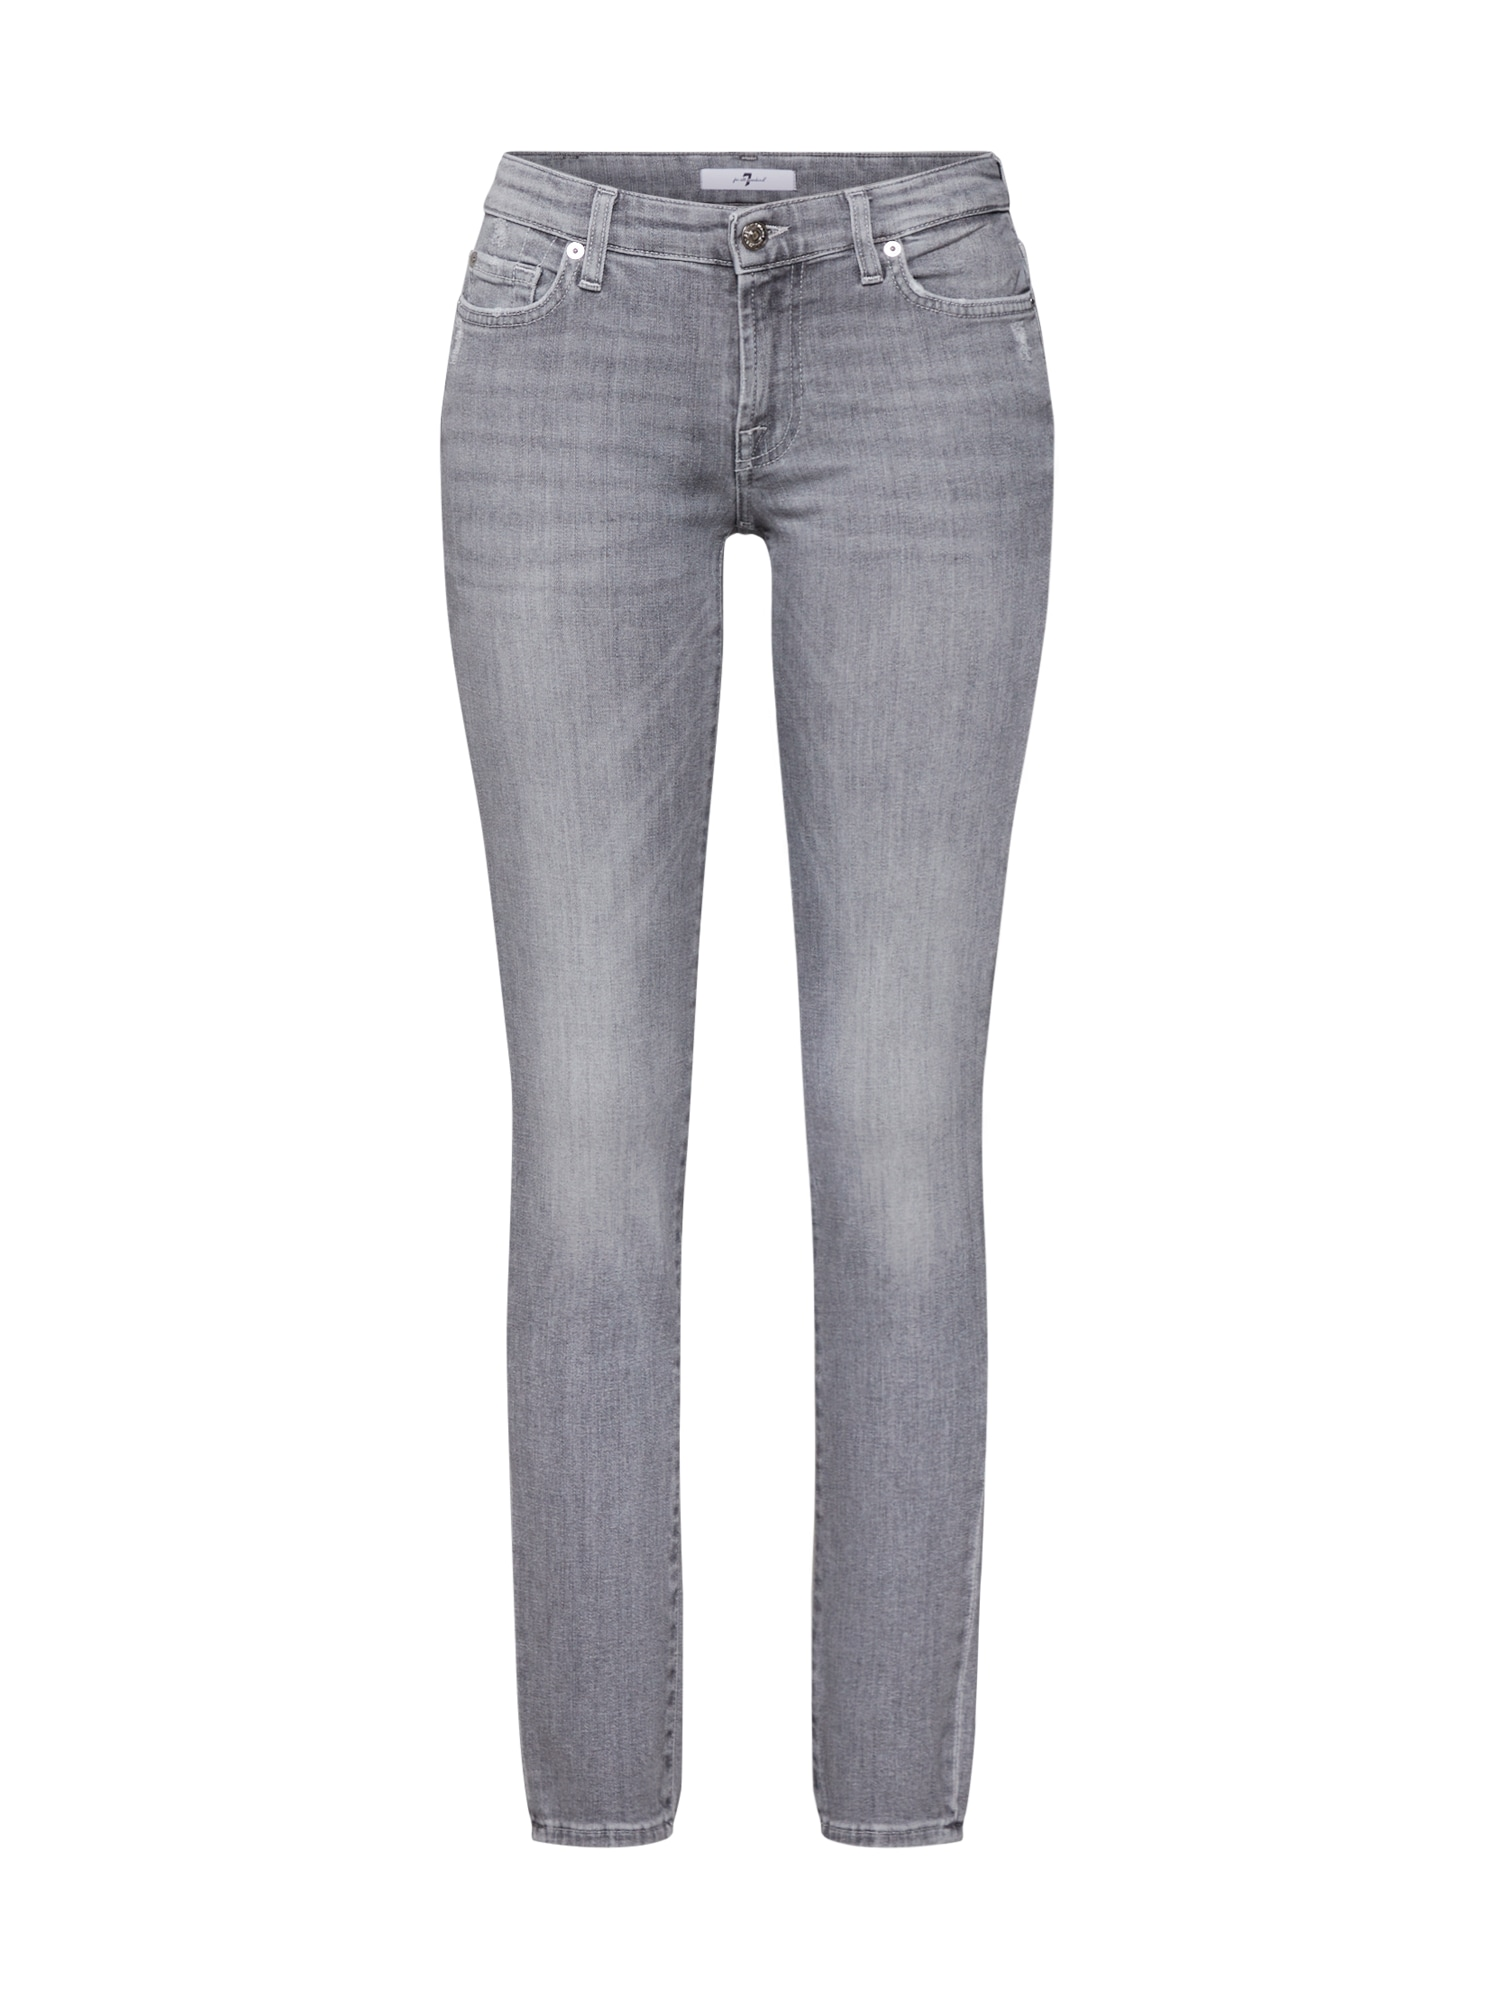 7 for all mankind Džinsai 'PYPER SLIM ILLUSION NEW DAWN' pilka